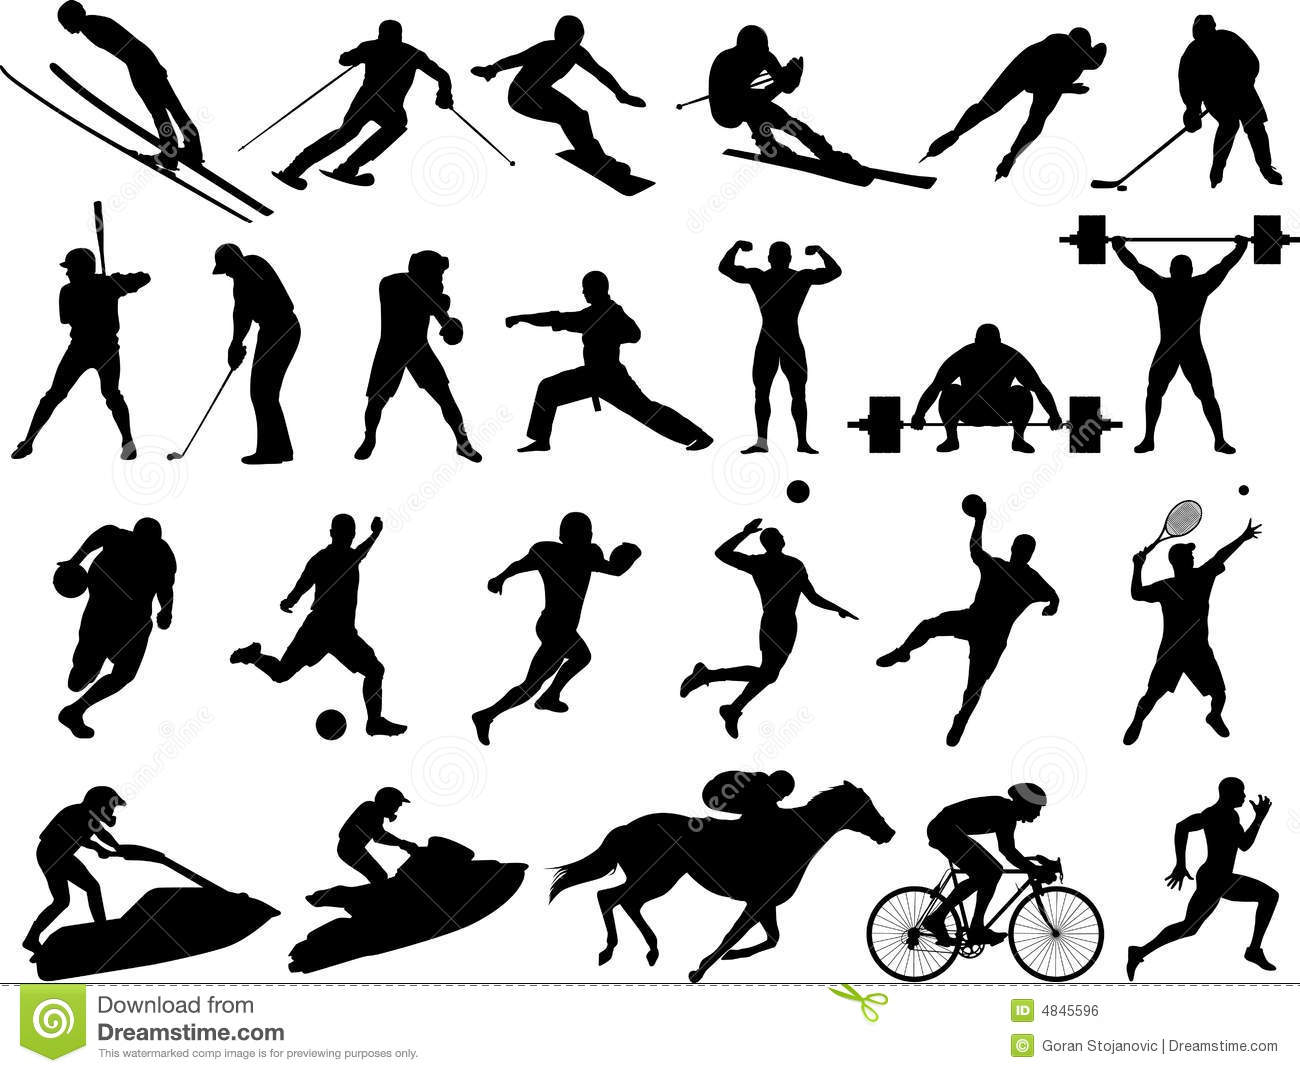 Dynamic Sports Figures Silhouette: Silhouettes De Sport De Vecteur Illustration De Vecteur